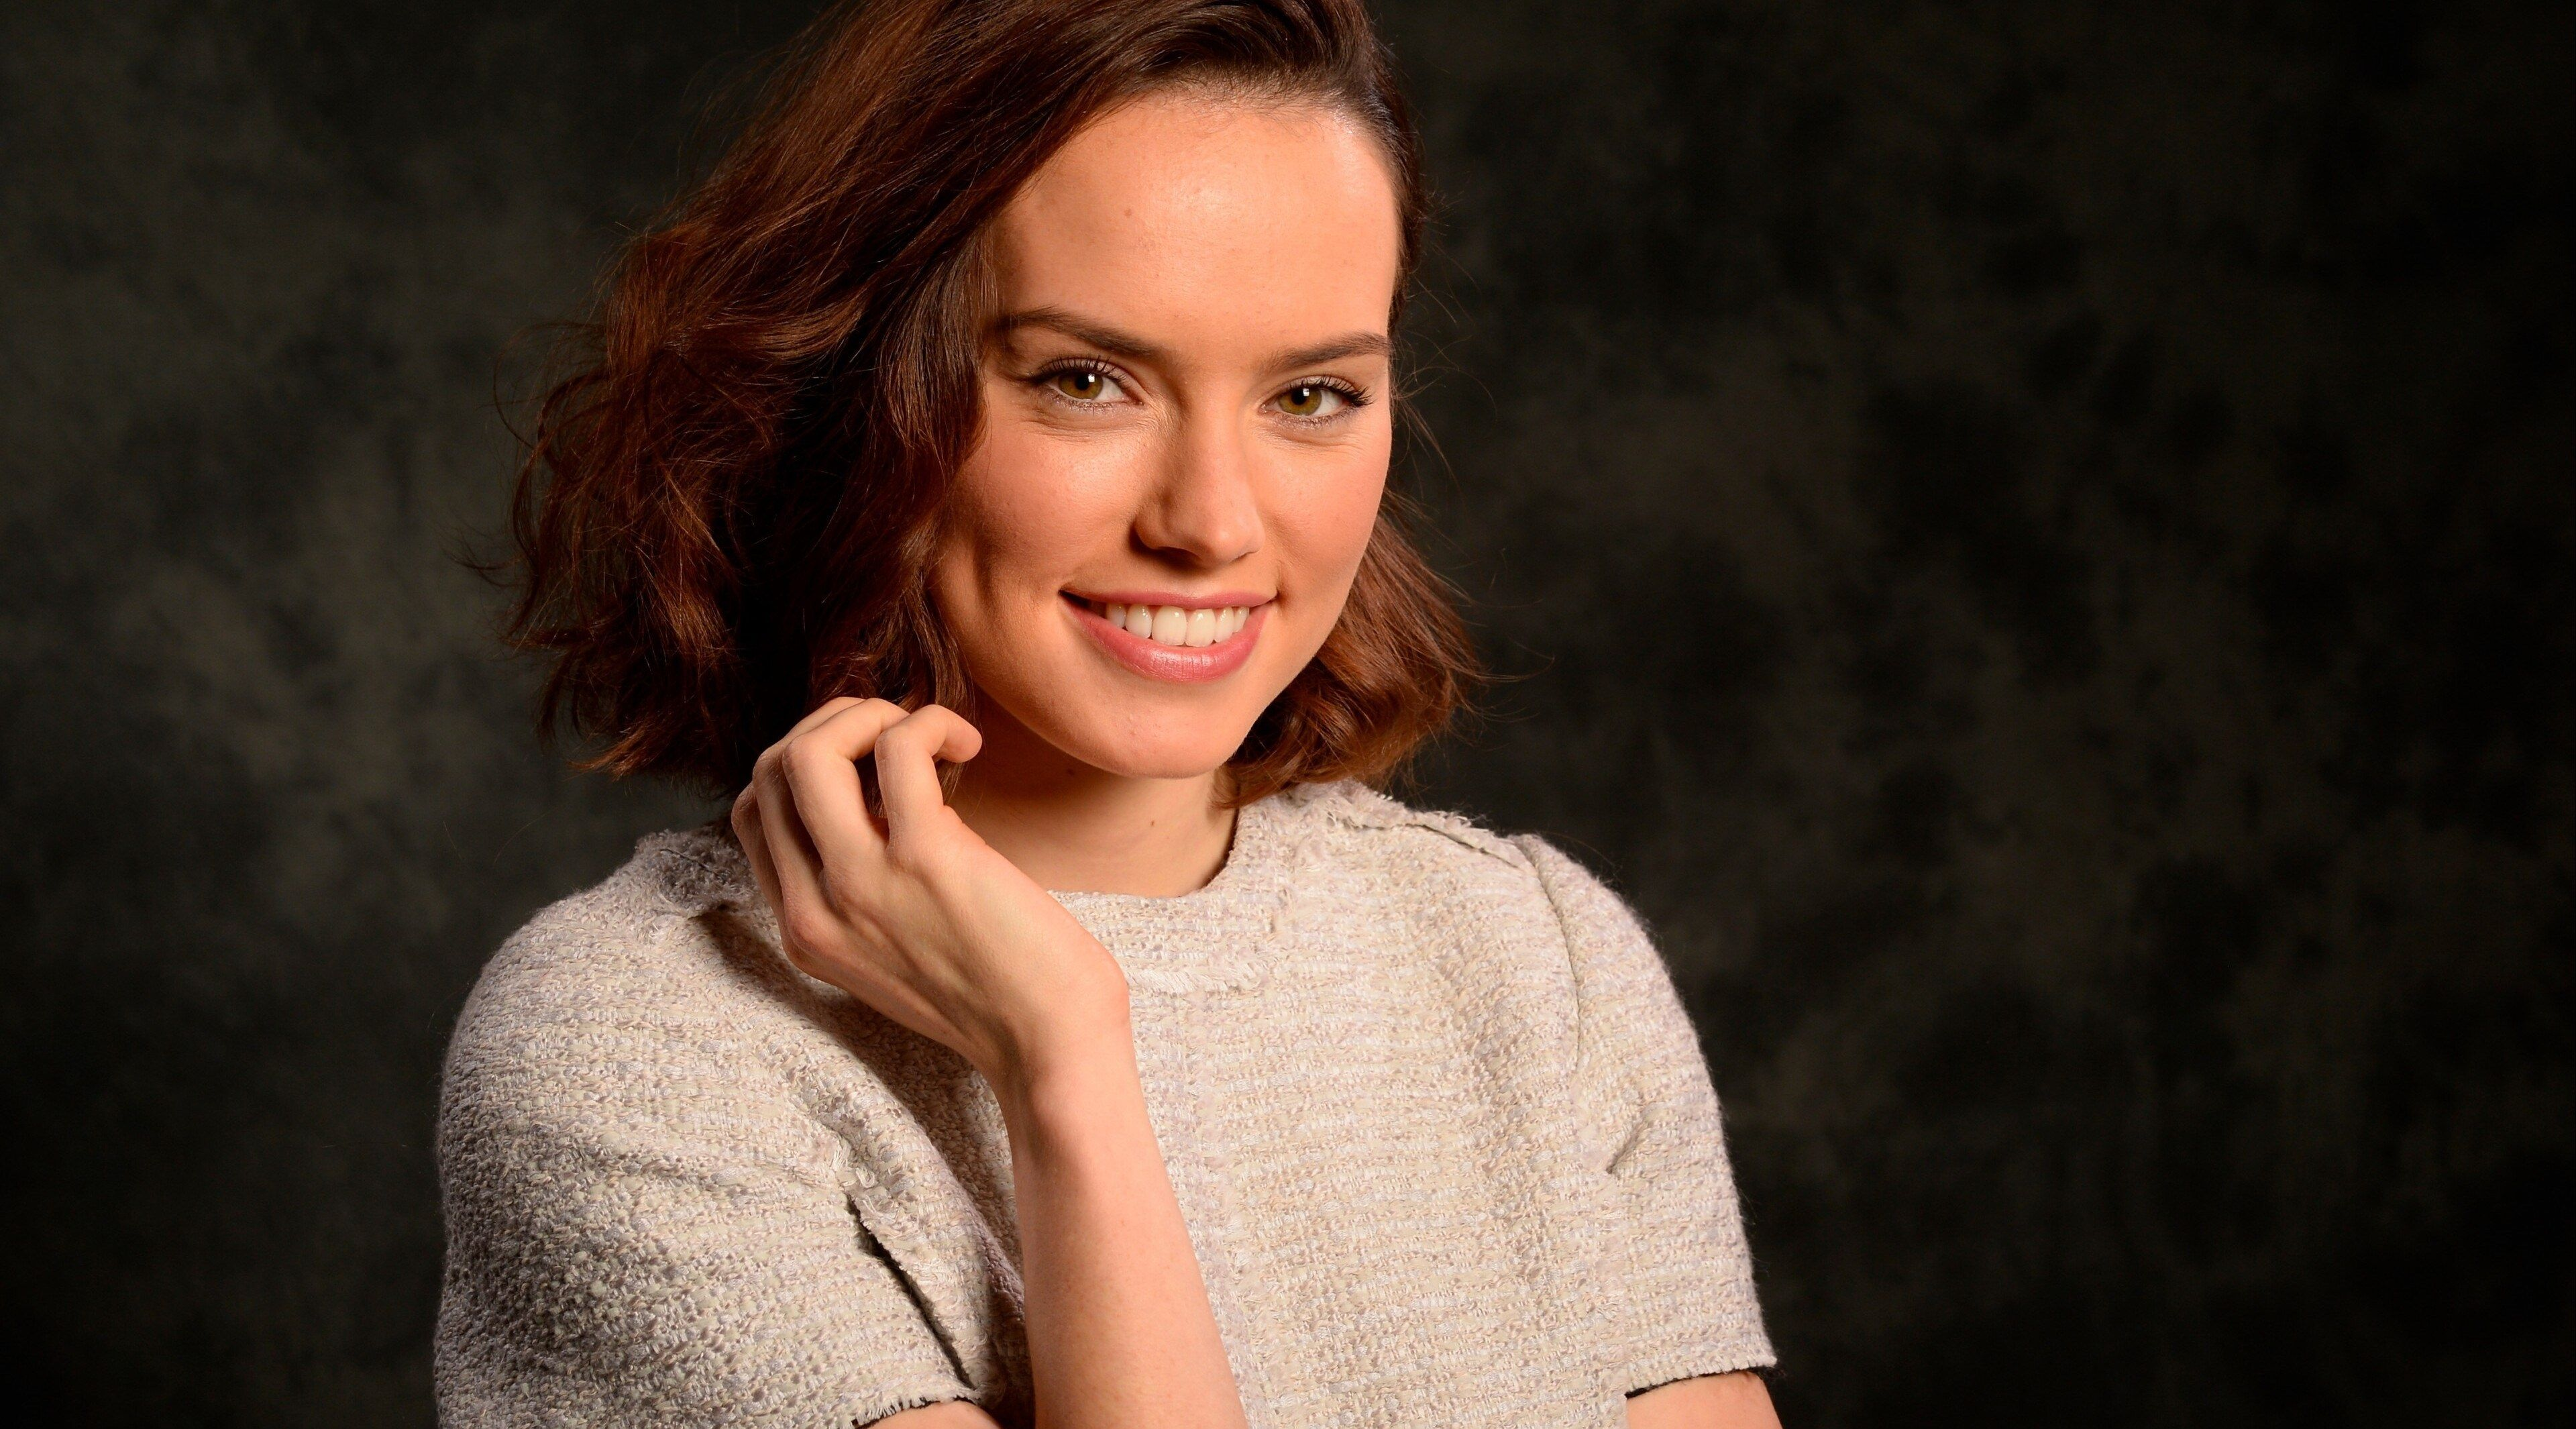 3840x2130 daisy ridley 4k hd wallpaper Daisy ridley star wars 3840x2130